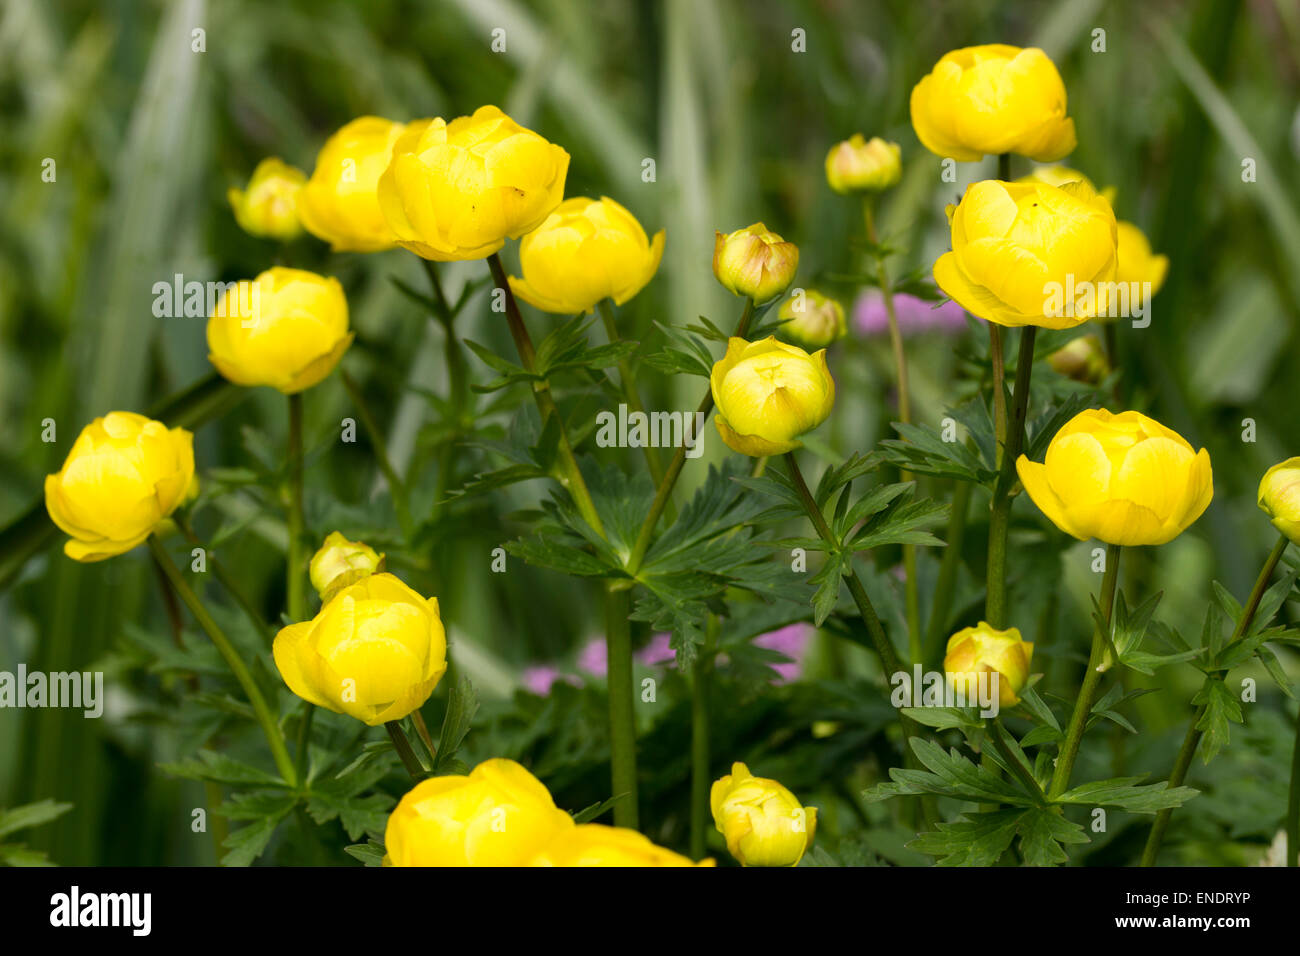 Yellow globe flowers of the spring flowering uk native trollius yellow globe flowers of the spring flowering uk native trollius europaeus mightylinksfo